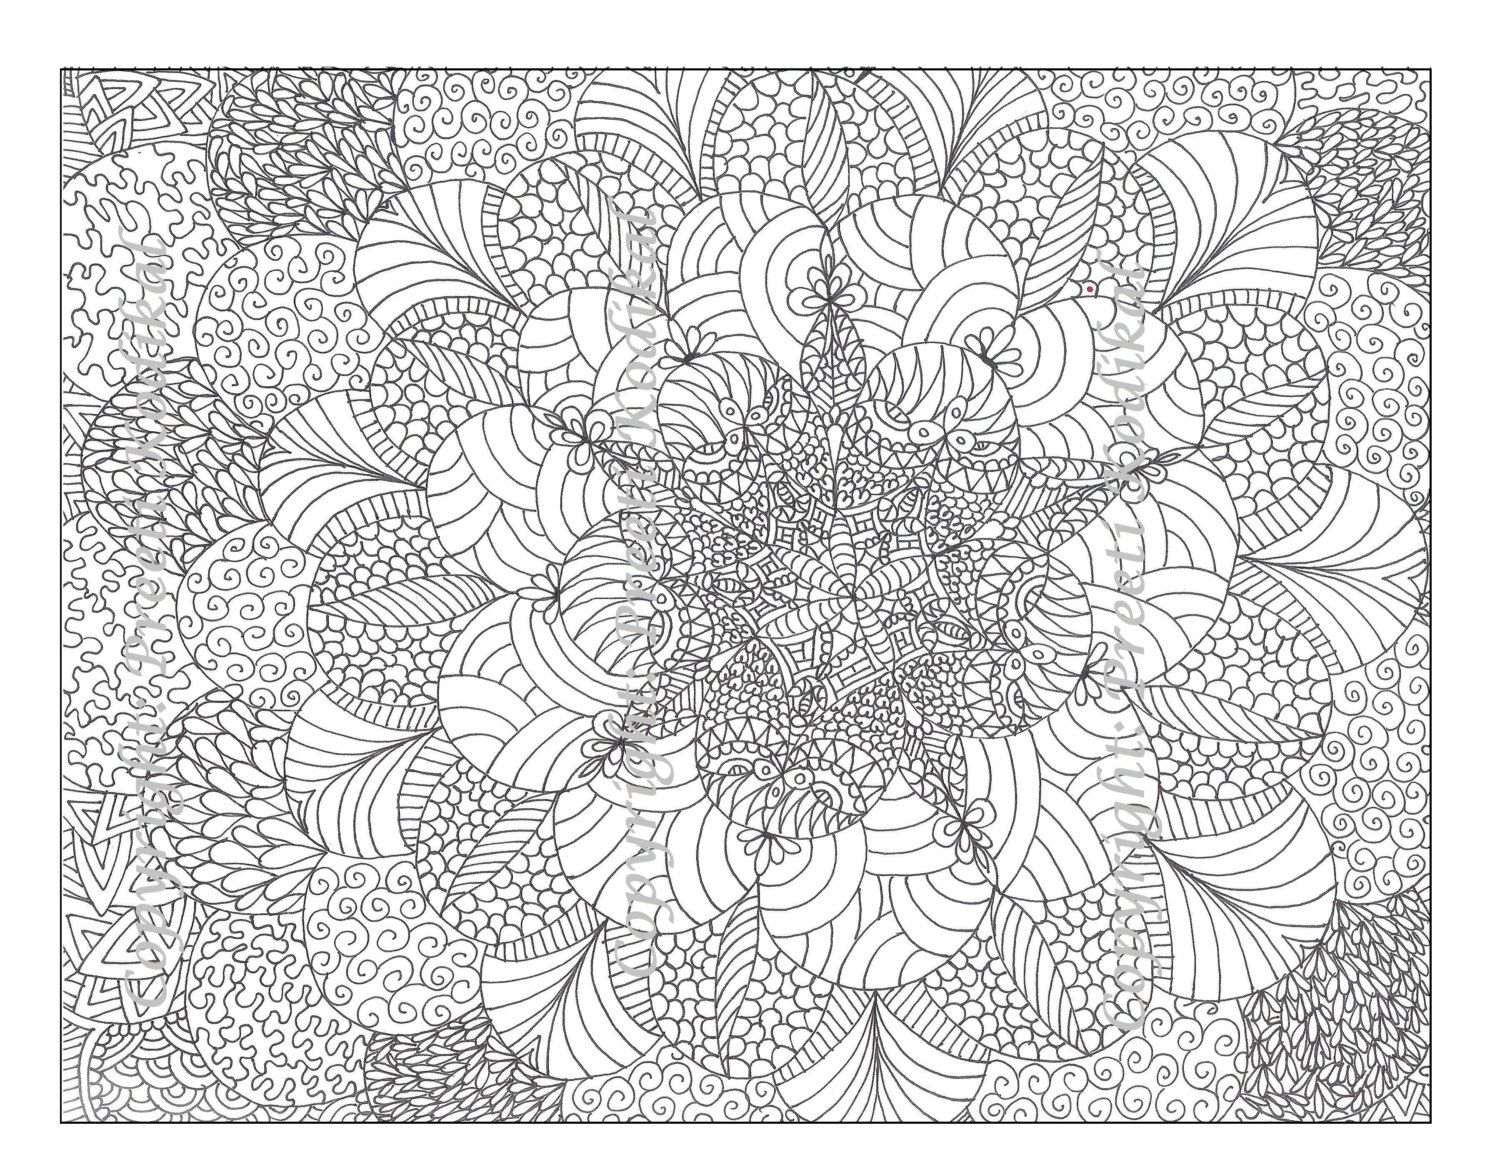 Detailed Geometric Coloring Pages - Bing Images | Colouring In ...